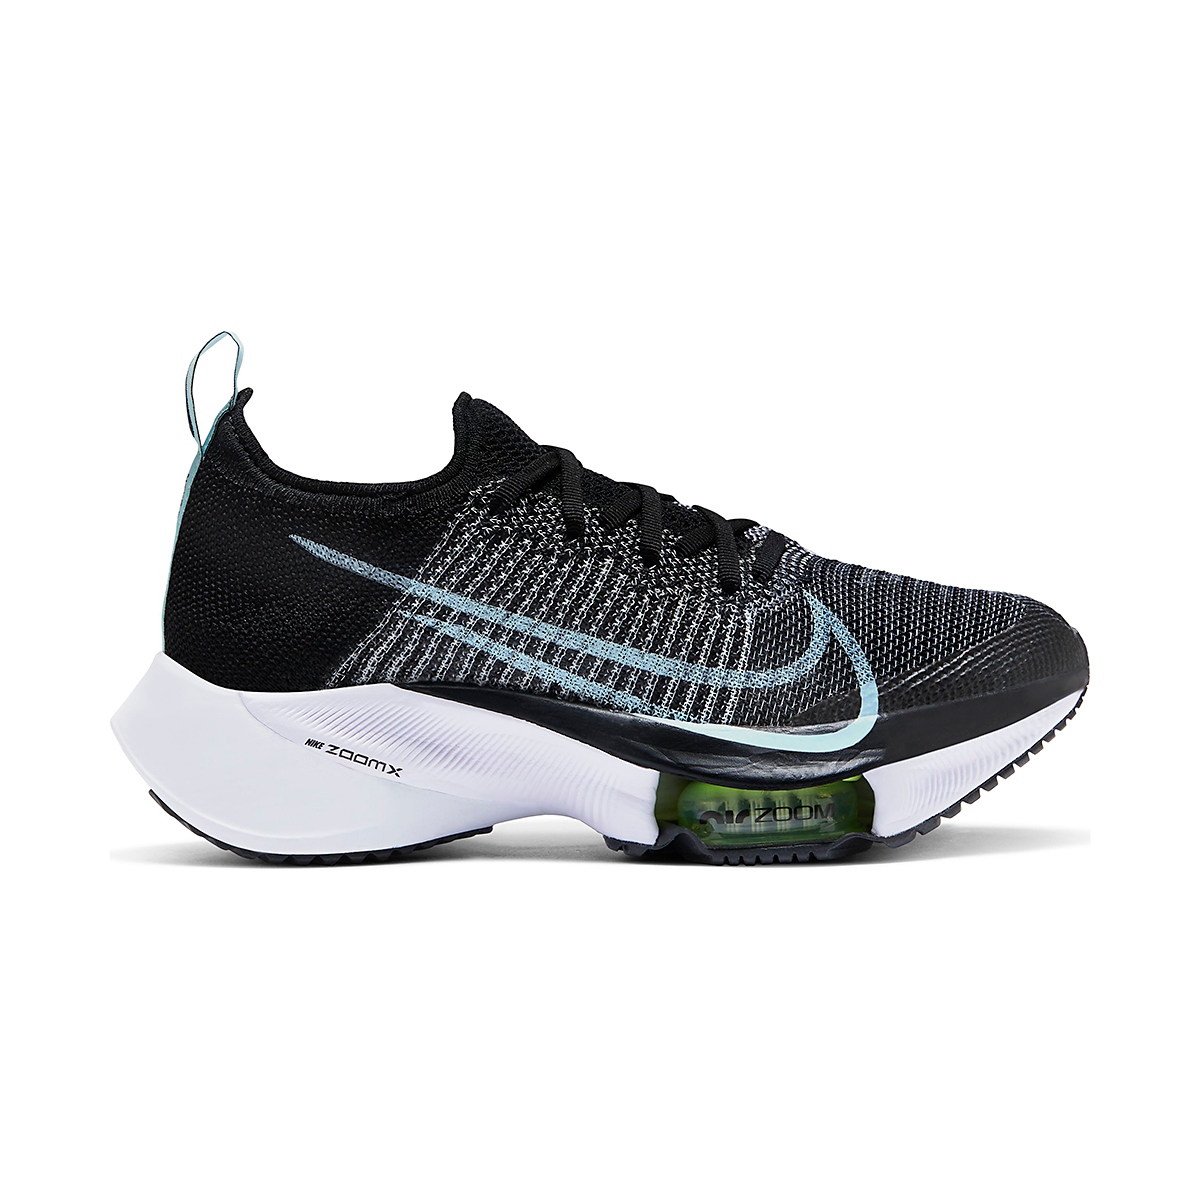 Women's Nike Air Zoom Tempo NEXT% Running Shoe - Color: Black/Glacier Ice-White-Barley Volt - Size: 5 - Width: Regular, Black/Glacier Ice-White-Barley Volt, large, image 1